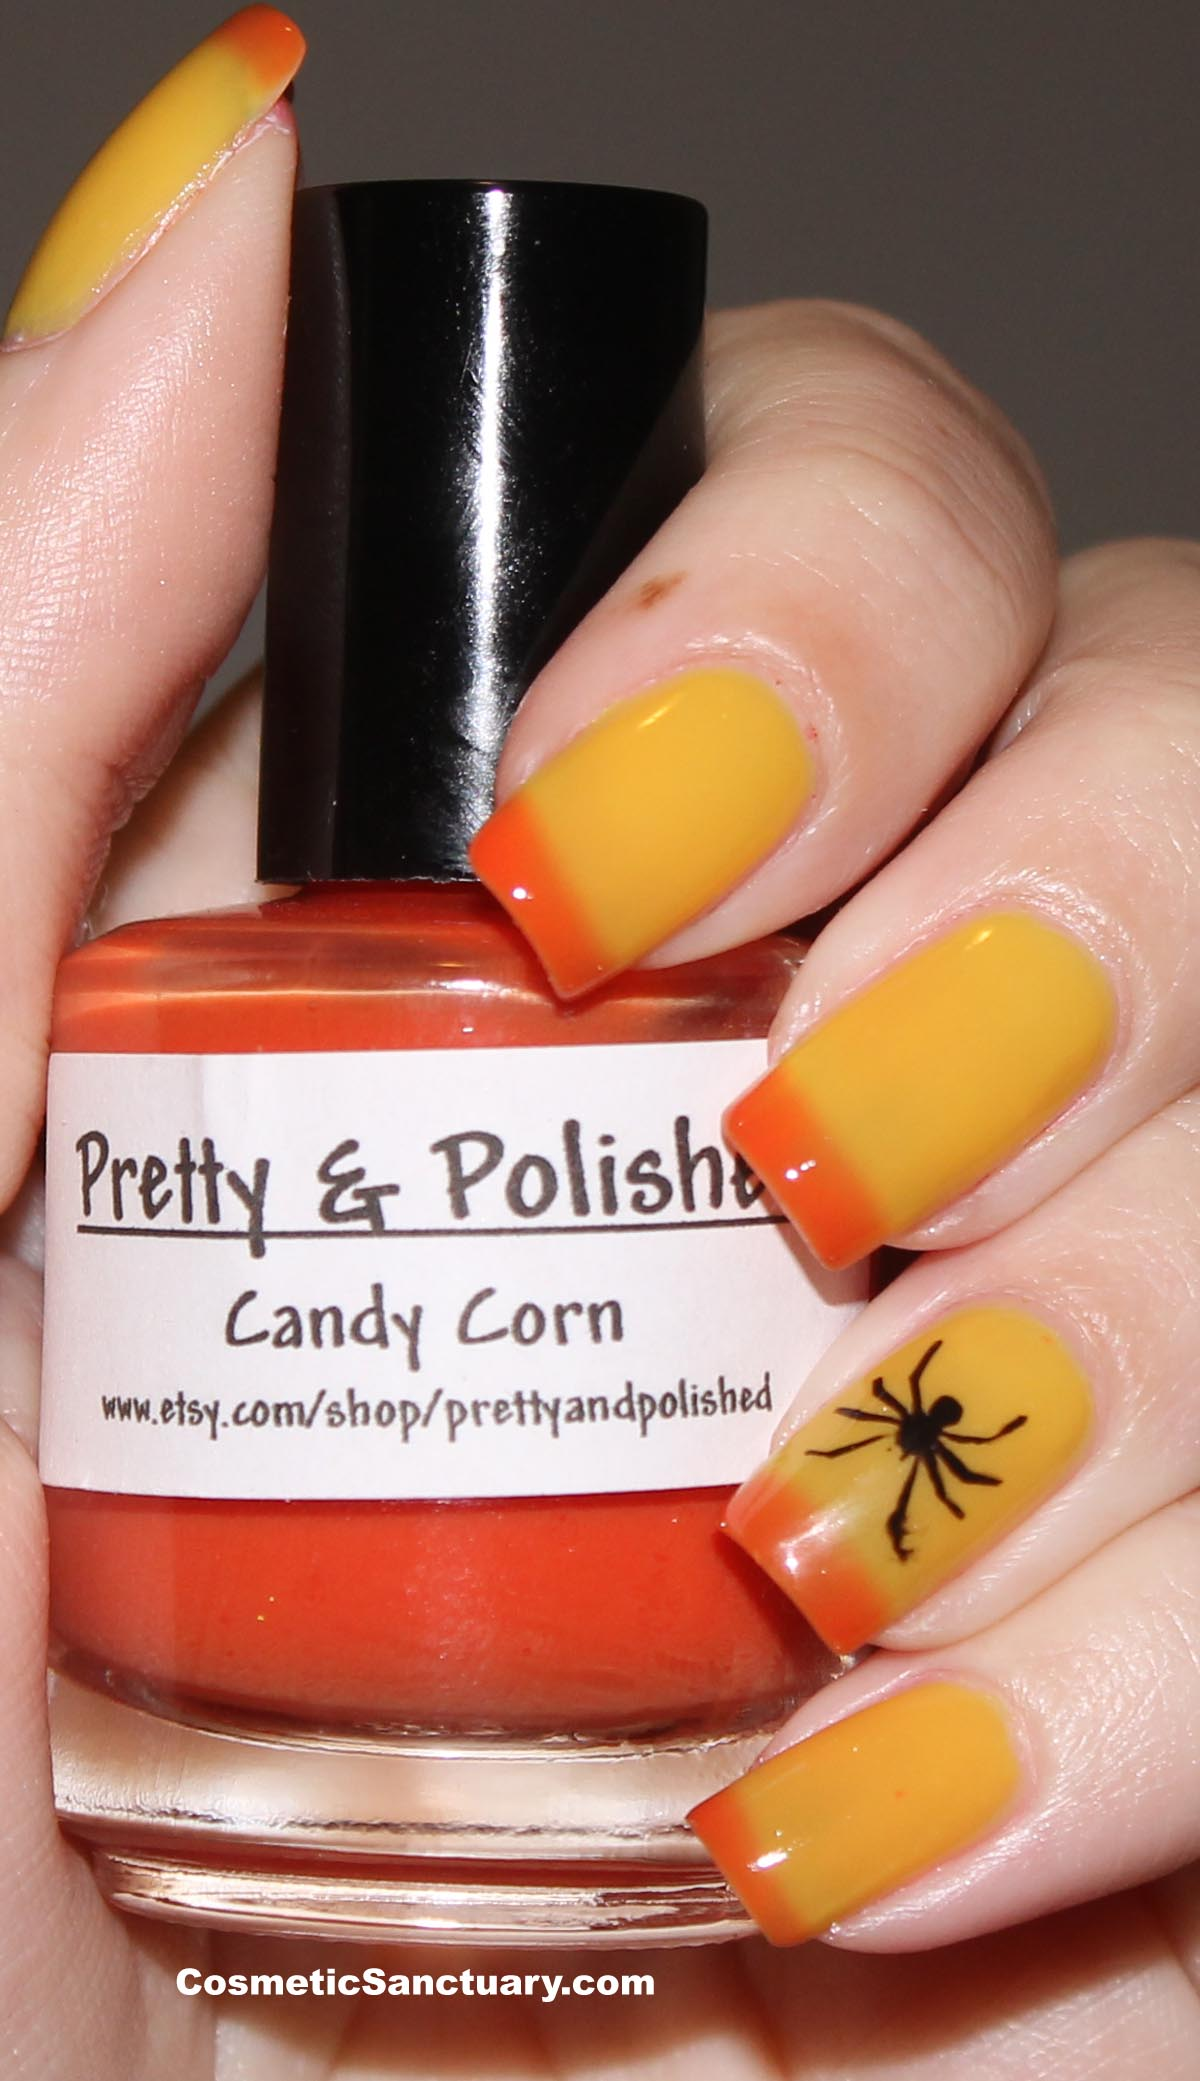 My Halloween Manicure with Pretty & Polished Candy Corn and Spider Stencil!